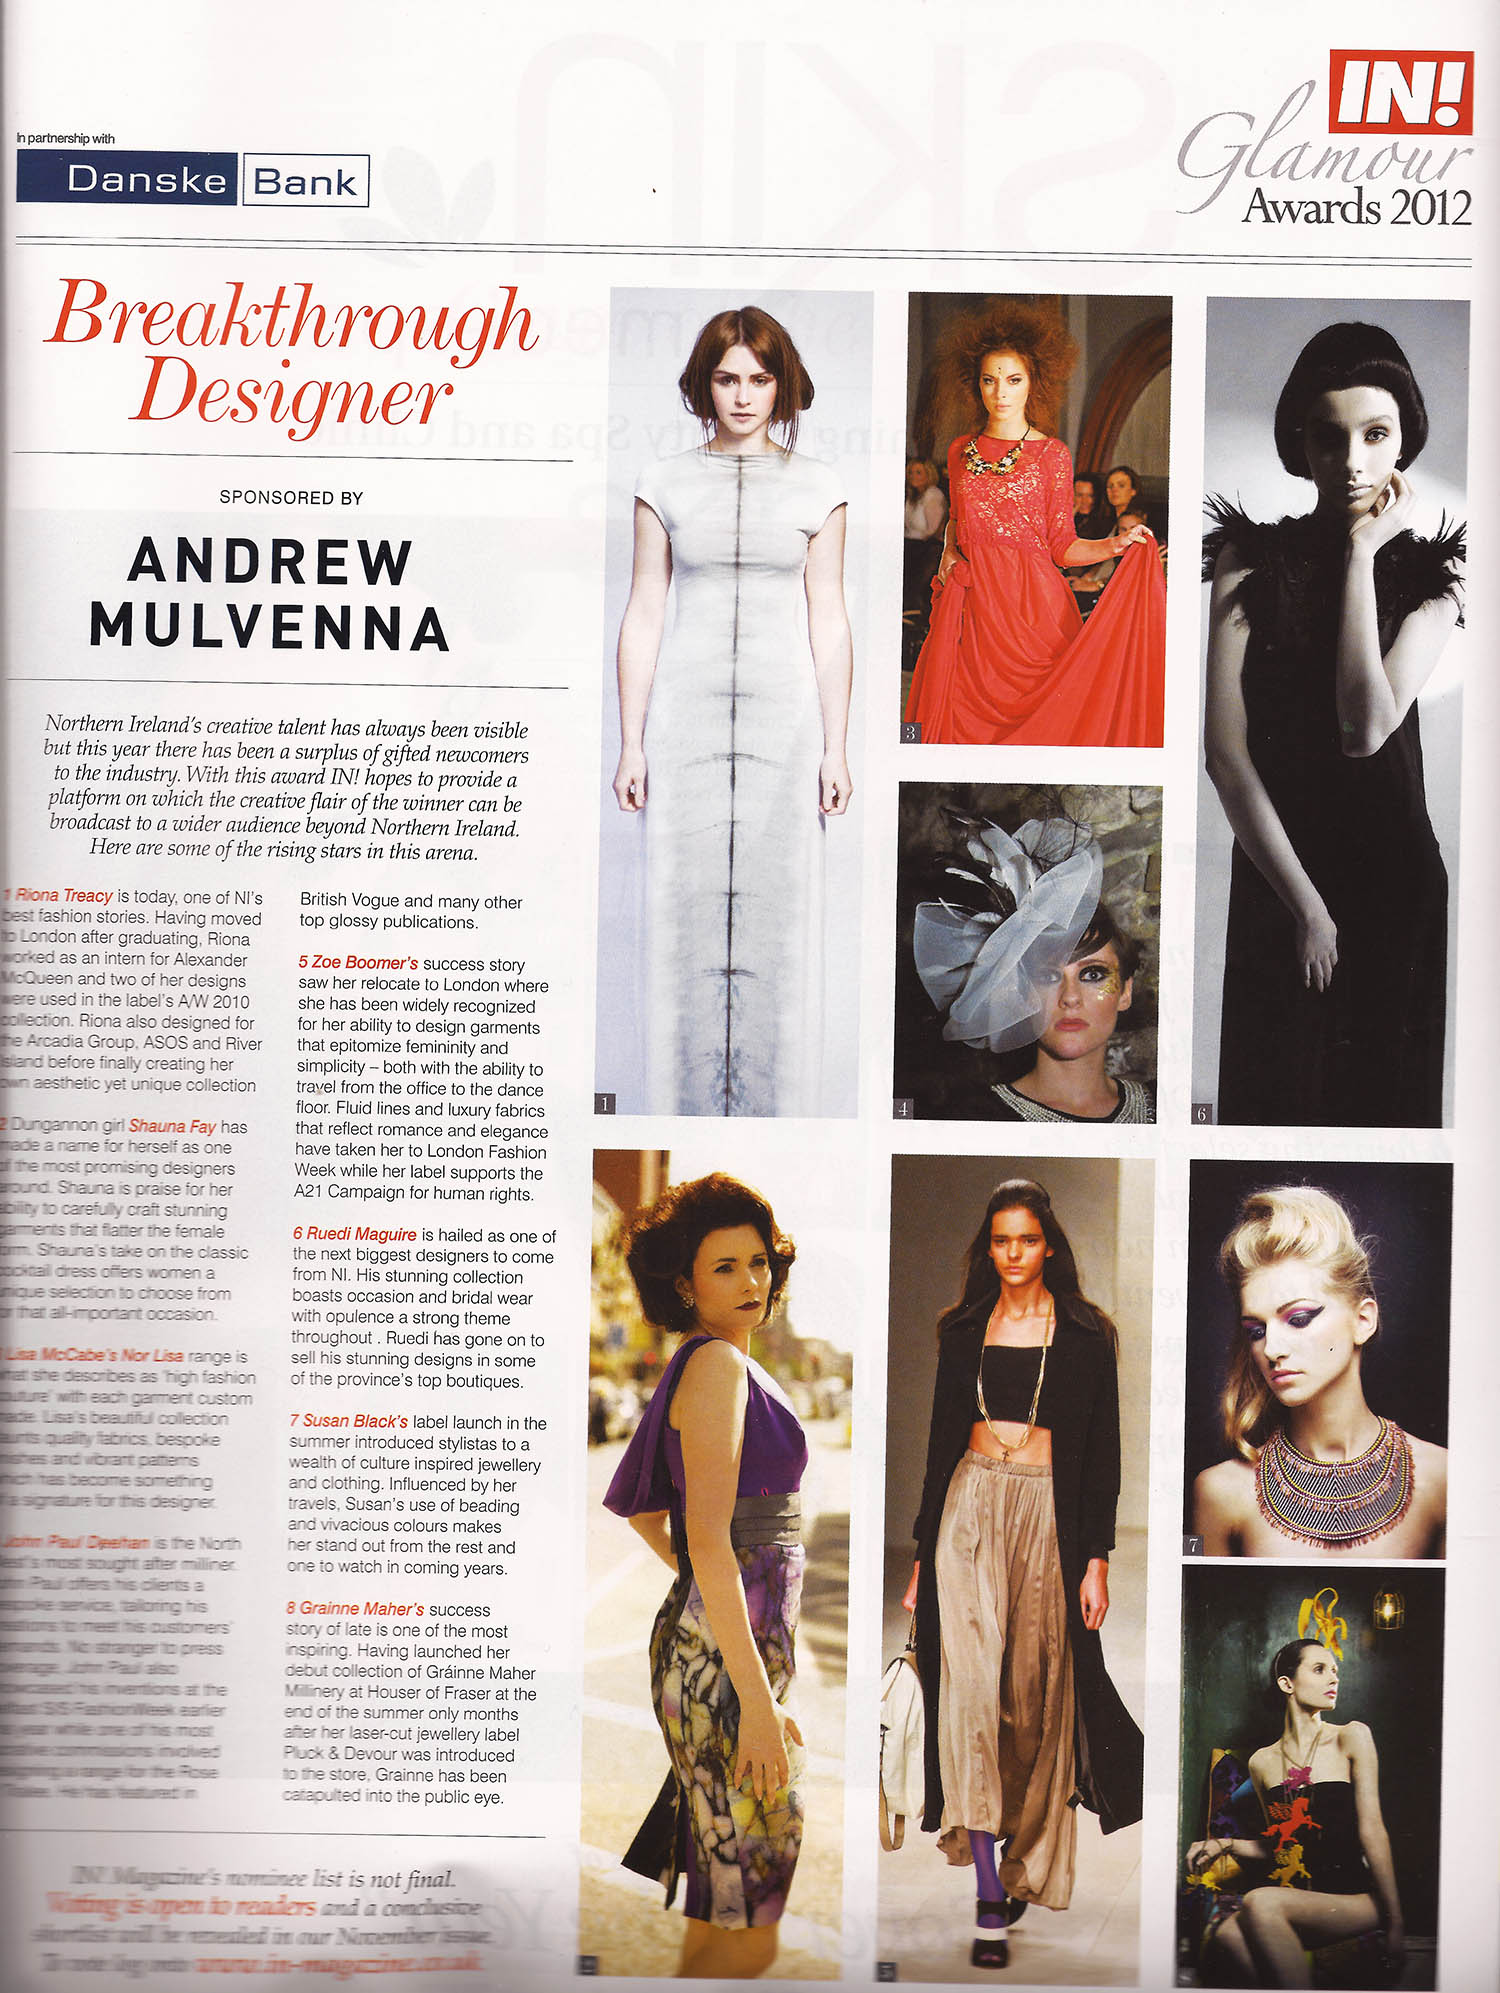 Nominations for Breakthrough Designer Black dress top right - IN! Magazine, Oct 2012